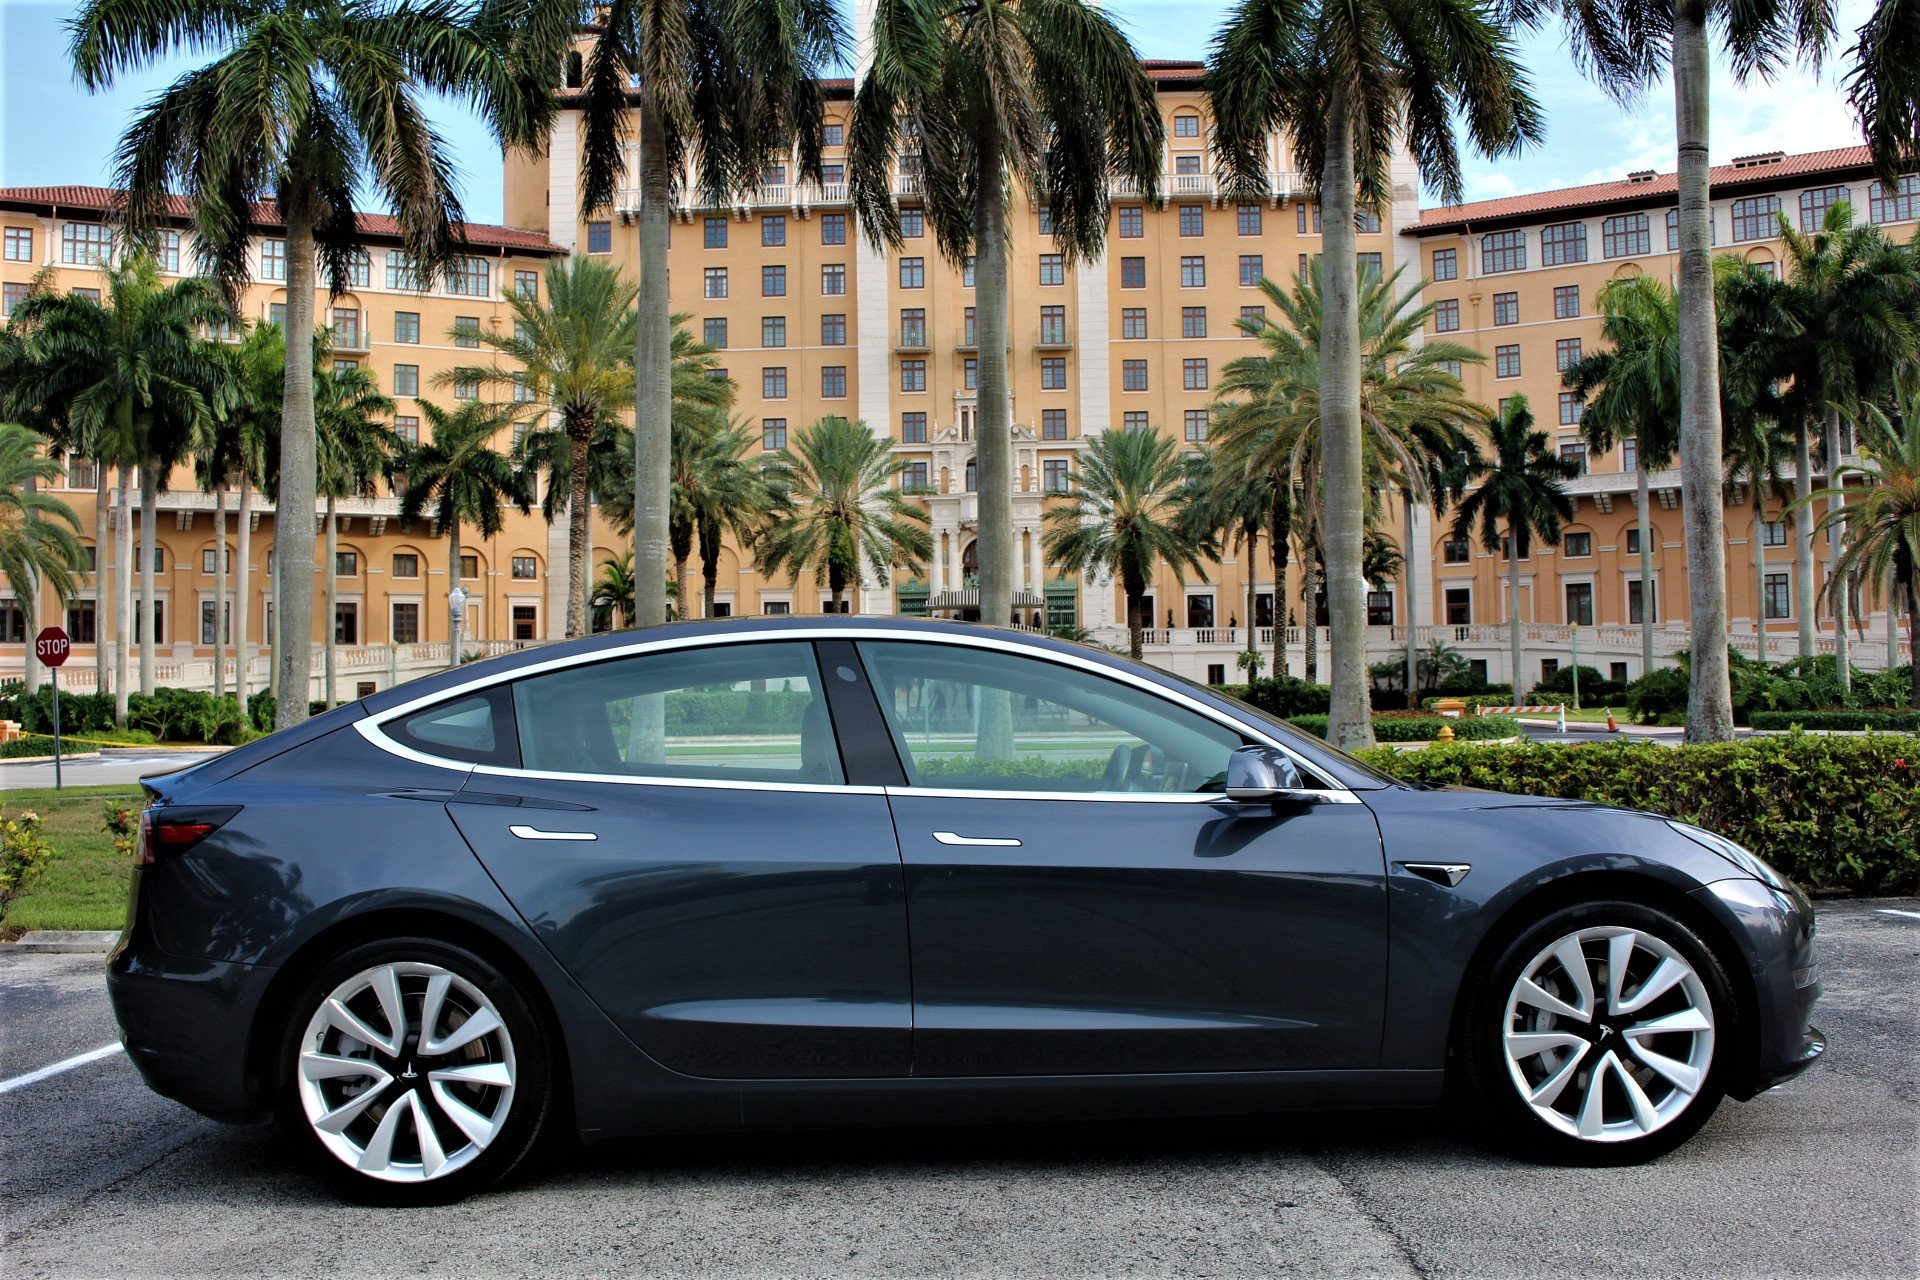 Used 2018 Tesla Model 3 Long Range for sale $37,850 at The Gables Sports Cars in Miami FL 33146 1